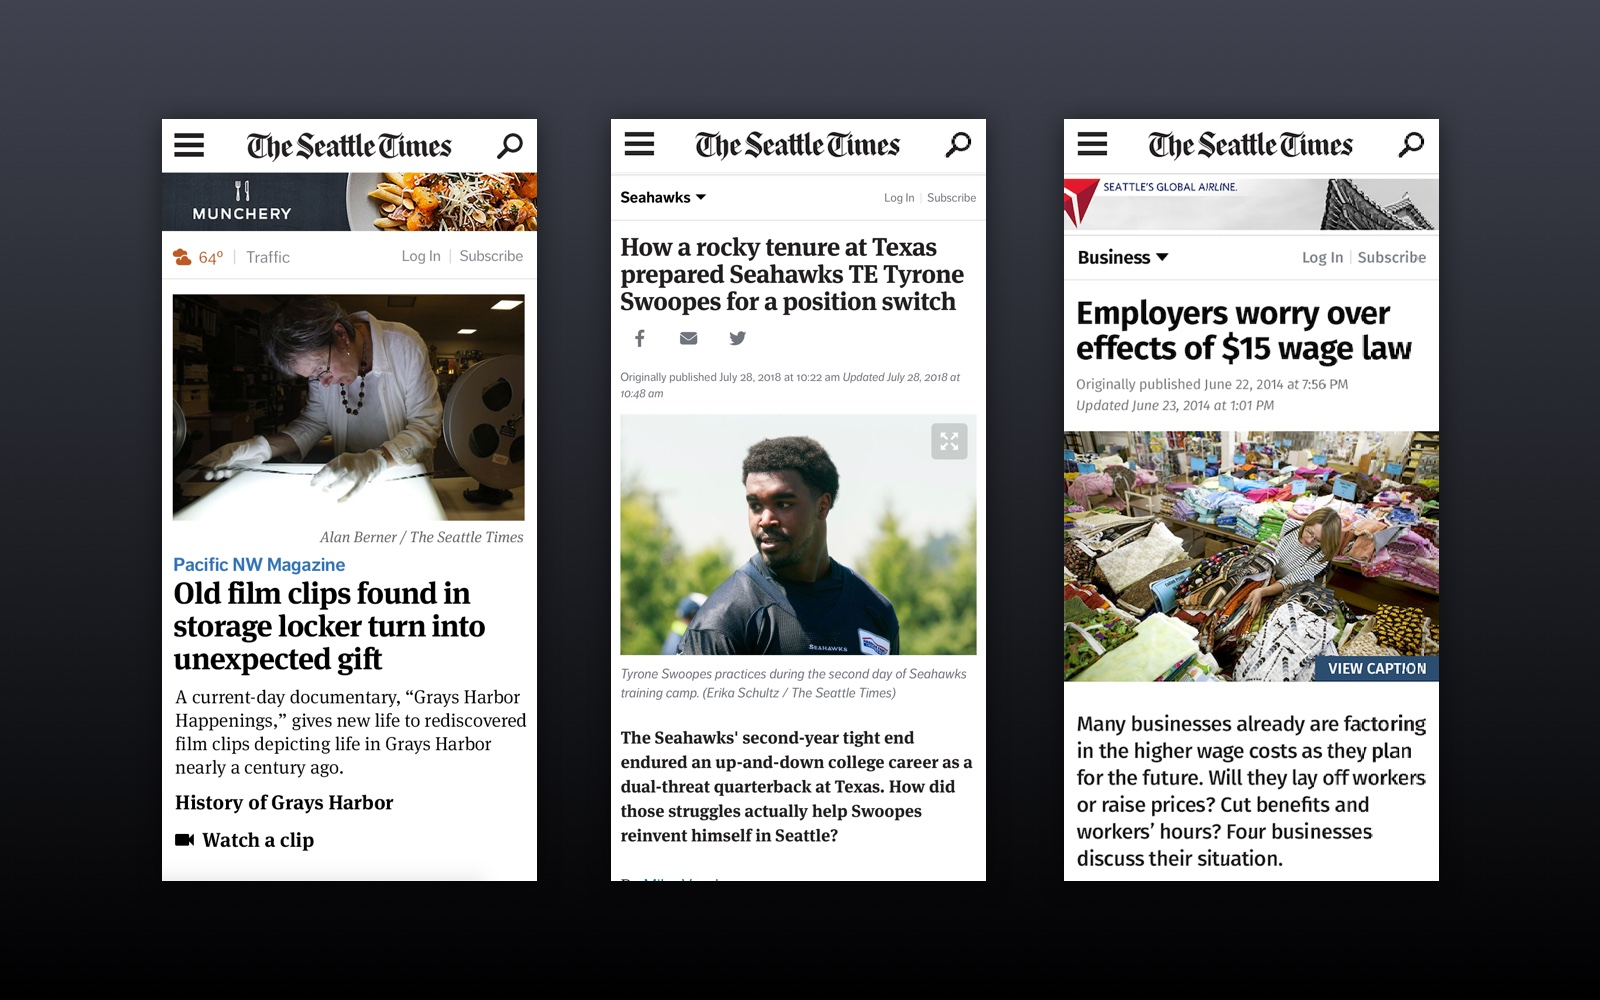 Responsive web examples of the Seattle Times viewed in a mobile browser